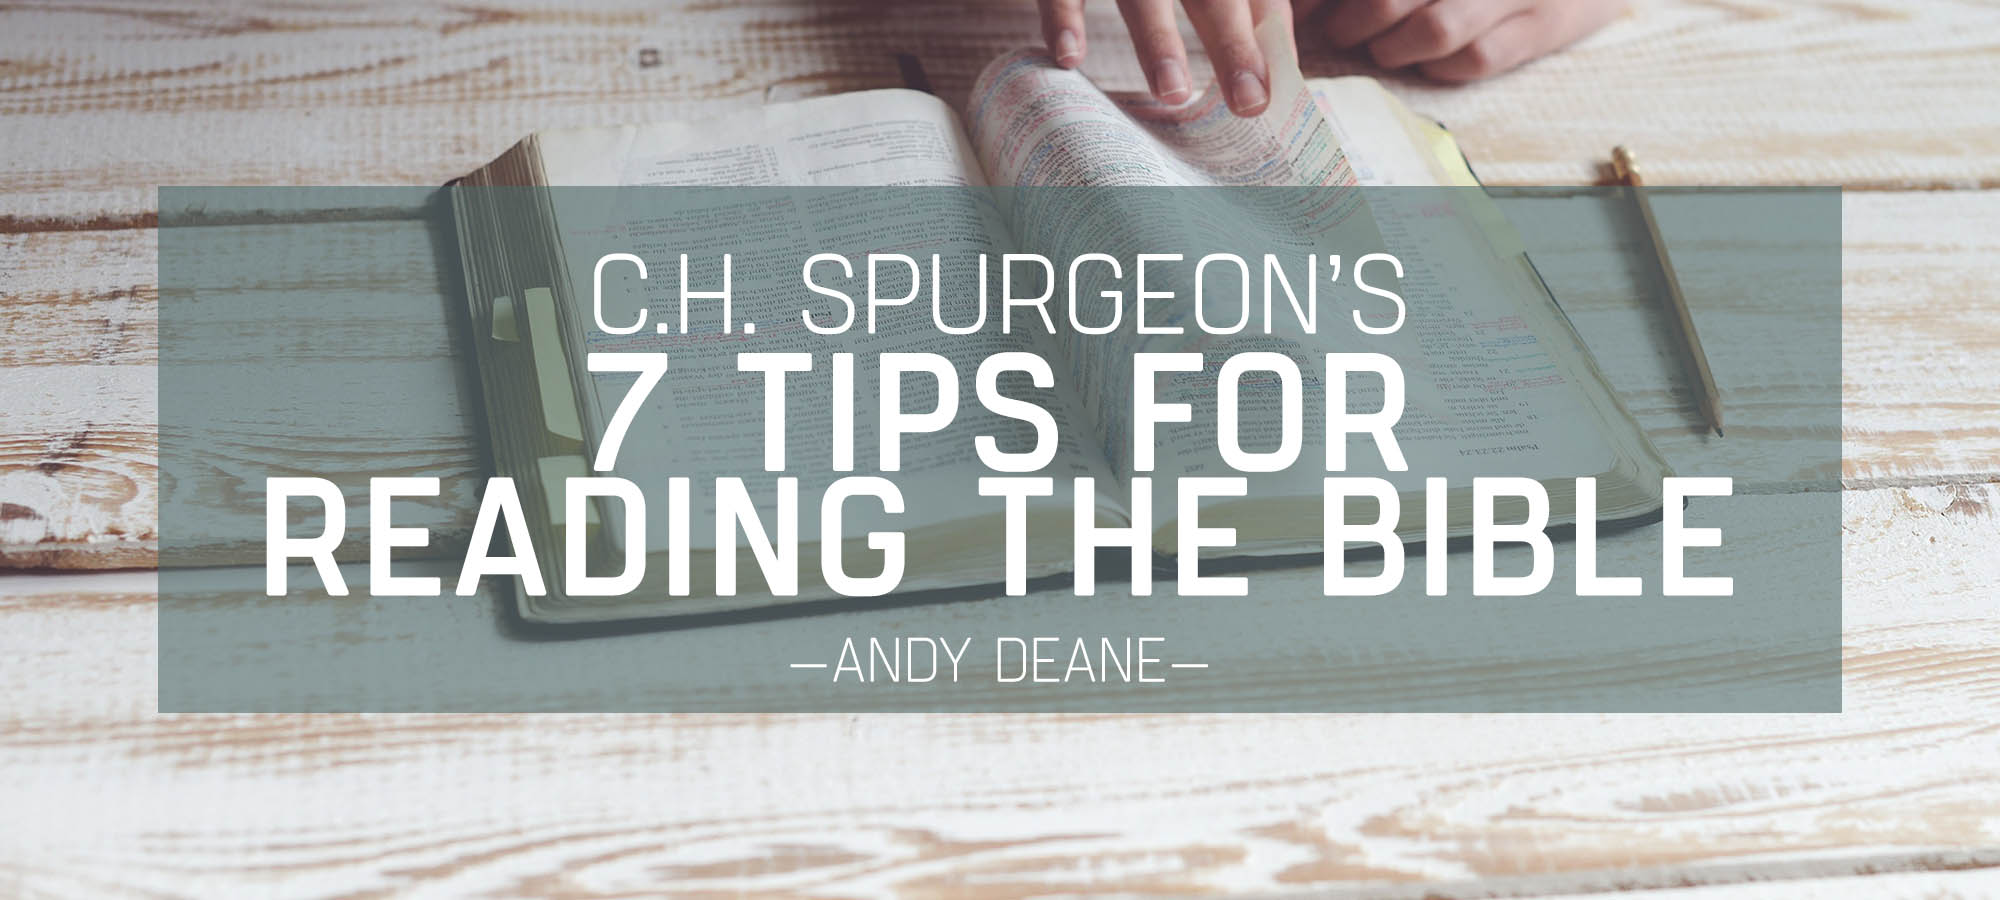 C.H. Spurgeon's Seven Tips for Reading the Bible